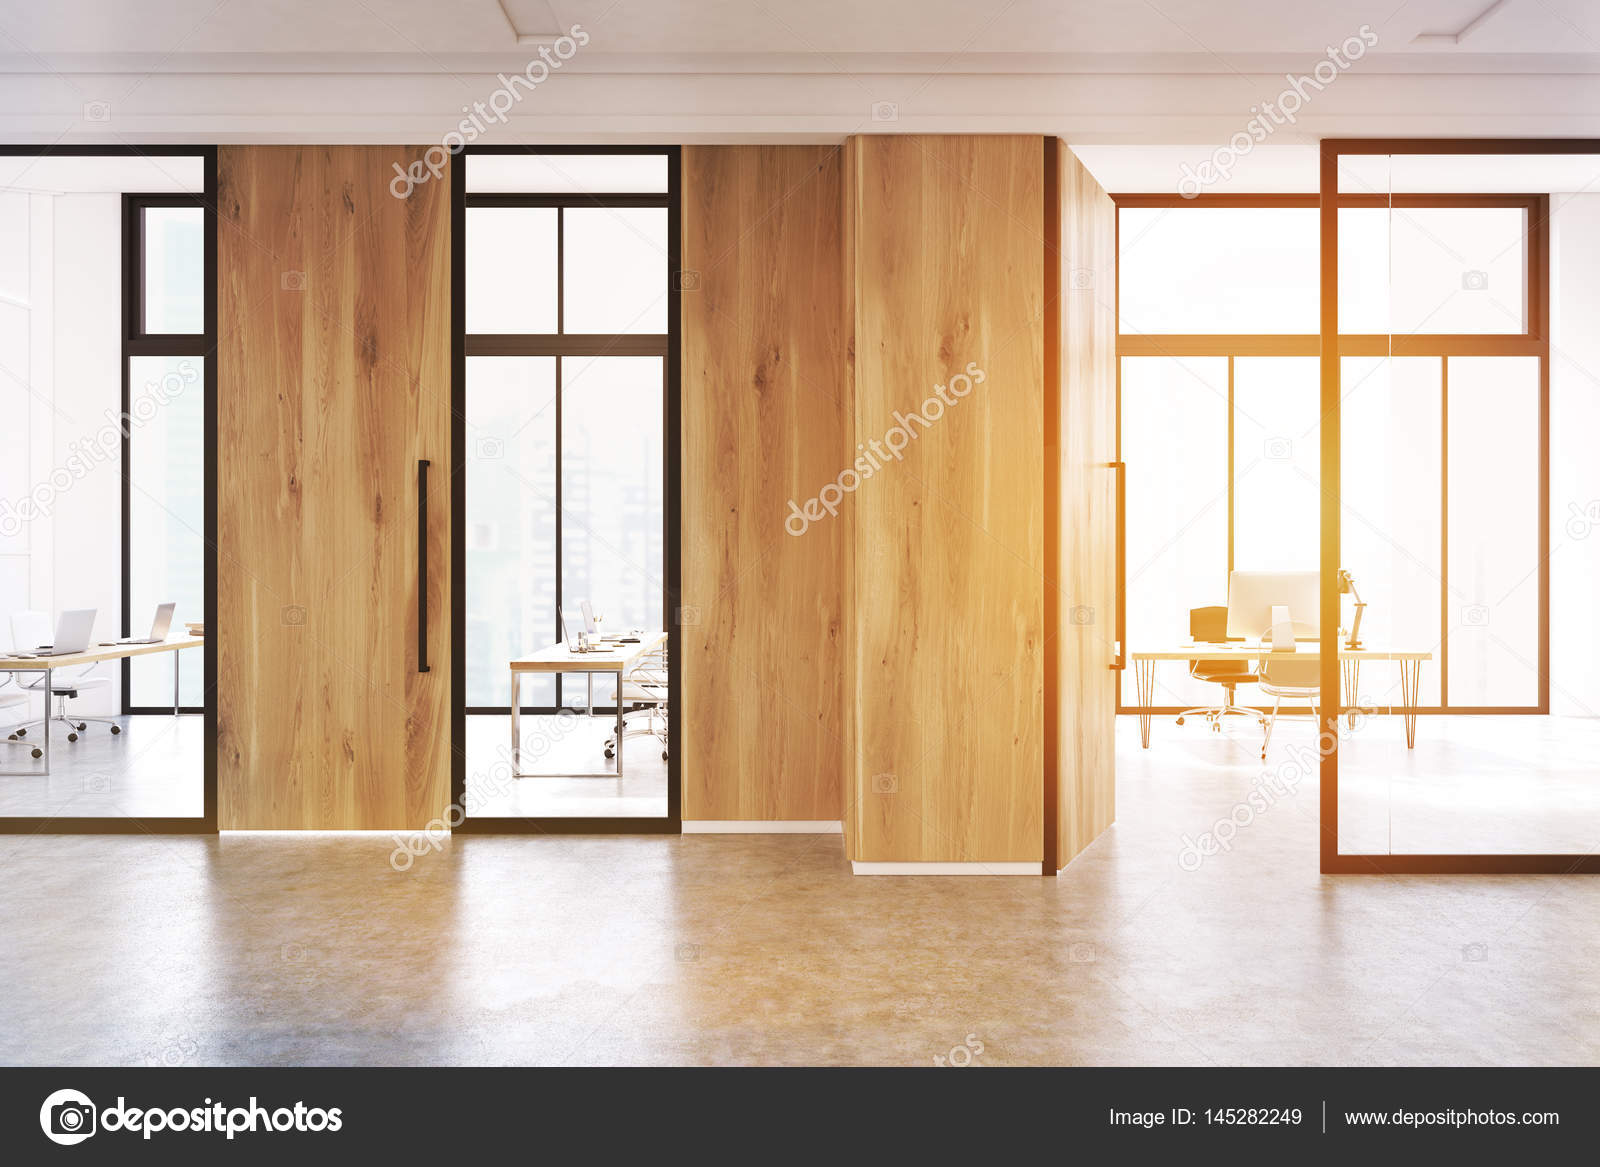 office lobby designs. Modern Office Lobby Interior With A Meeting Room Glass Walls. There Is Wooden Door And Wall Fragment. 3d Rendering, Mock Up, Toned Image \u2014 Photo By Designs E